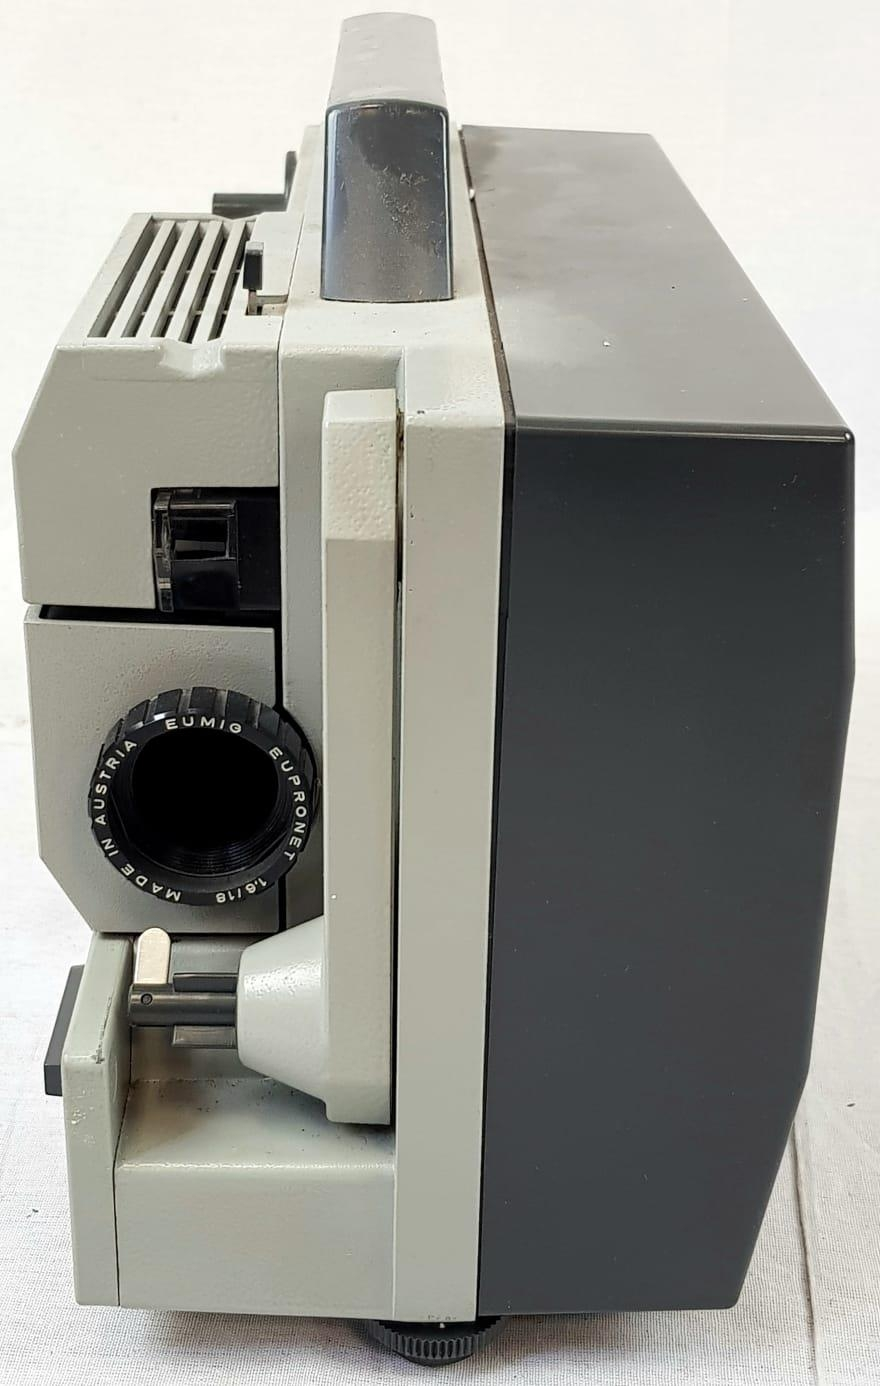 EUMIG 8MM PROJECTOR IN WORKING ORDER PLUS A COLLAPSABLE SCREEN(slight damage but still usable - Image 3 of 6